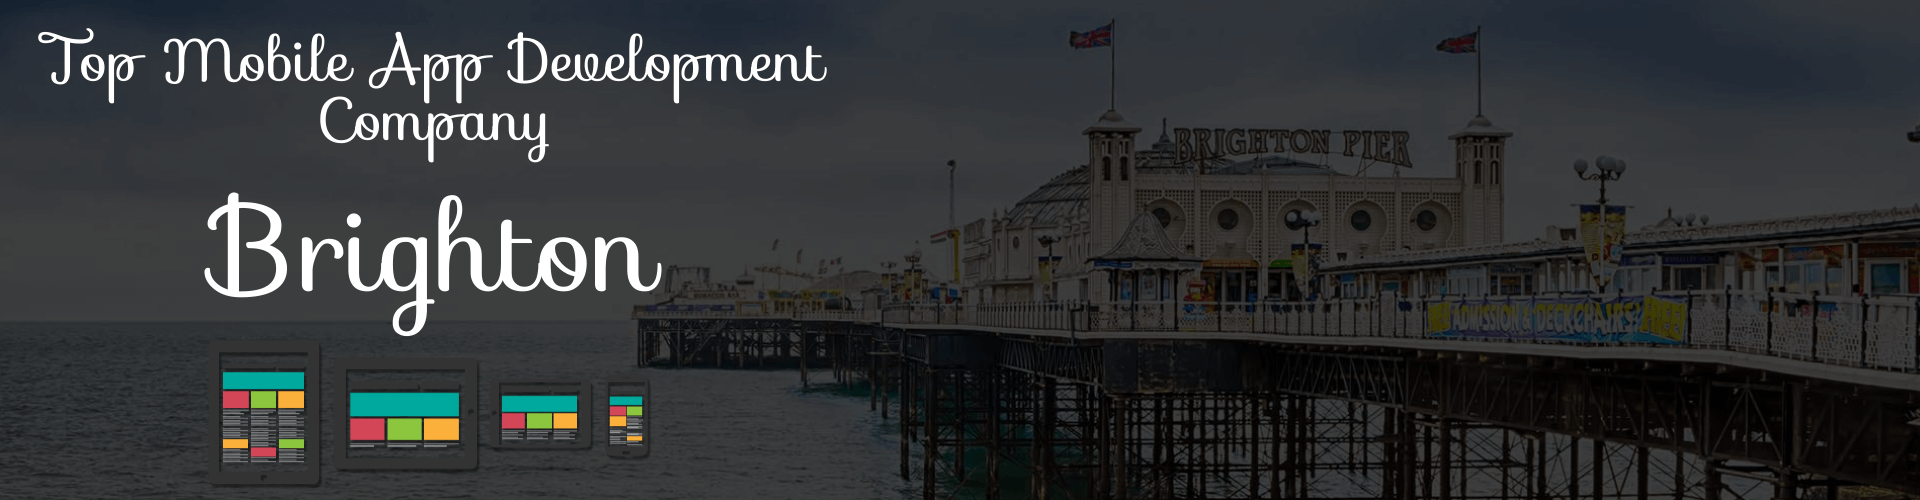 mobile app development company brighton